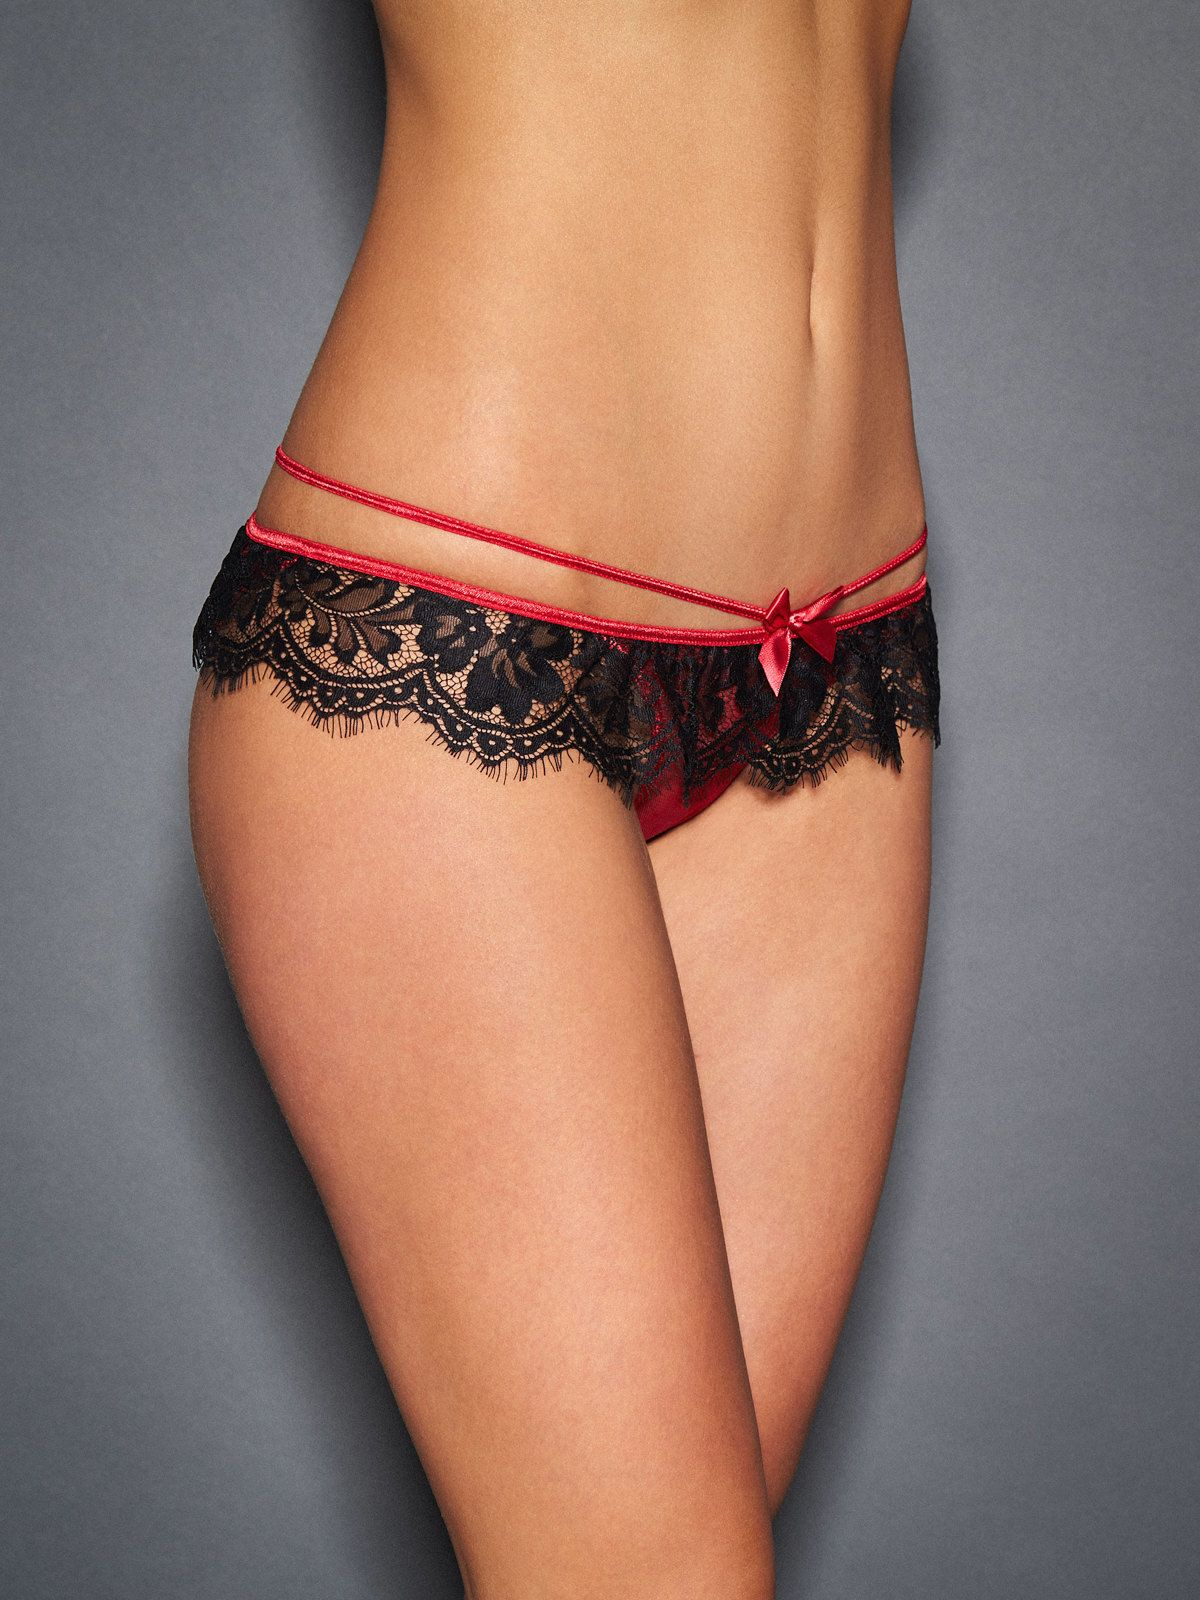 b4b663e42bc7 Our most provocative panty, the Jade Open Panel Panty from Frederick's of  Hollywood this defines ultra-sexy style. Stunning features include  figure-hugging ...